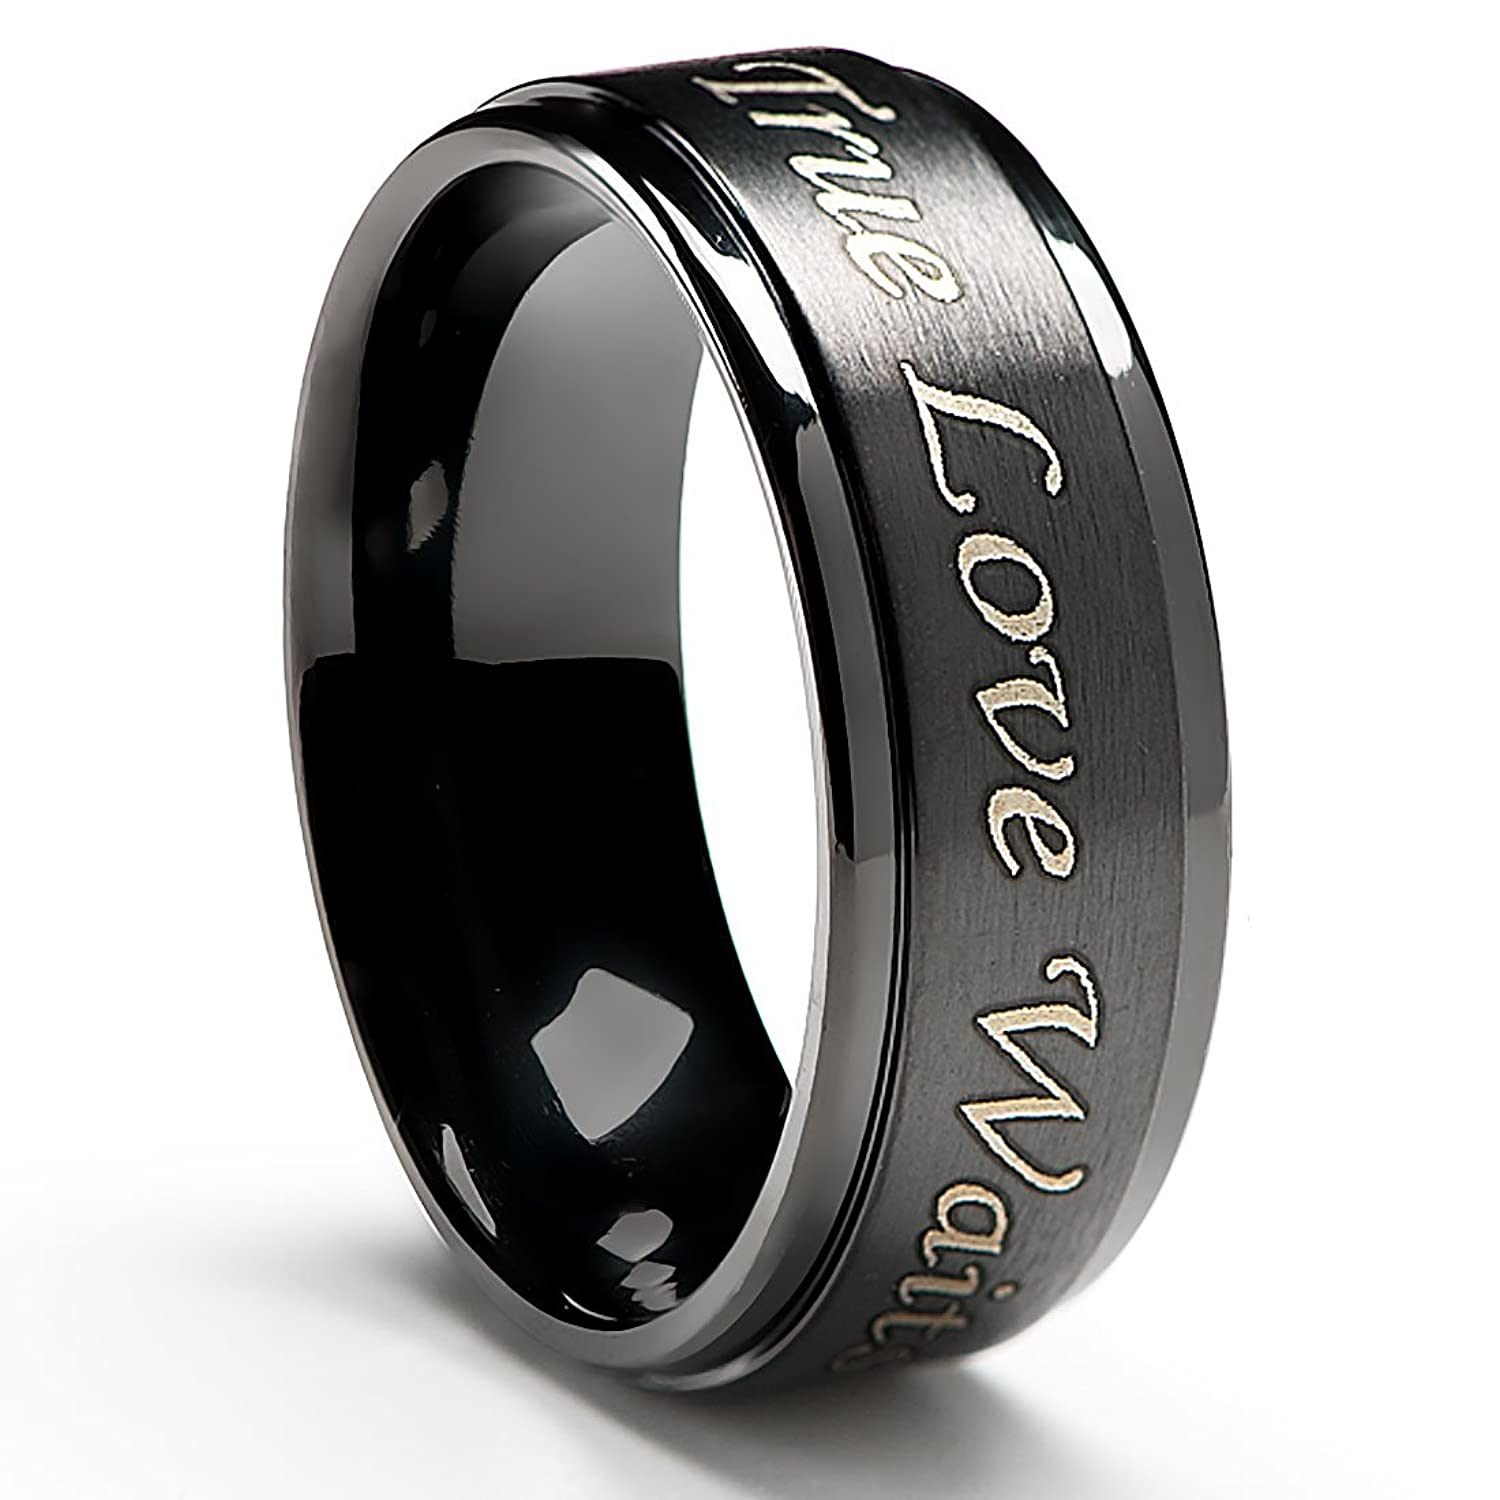 amazon black rings jewelry wedding com baseball zirconium fit comfort mens pattern band dp